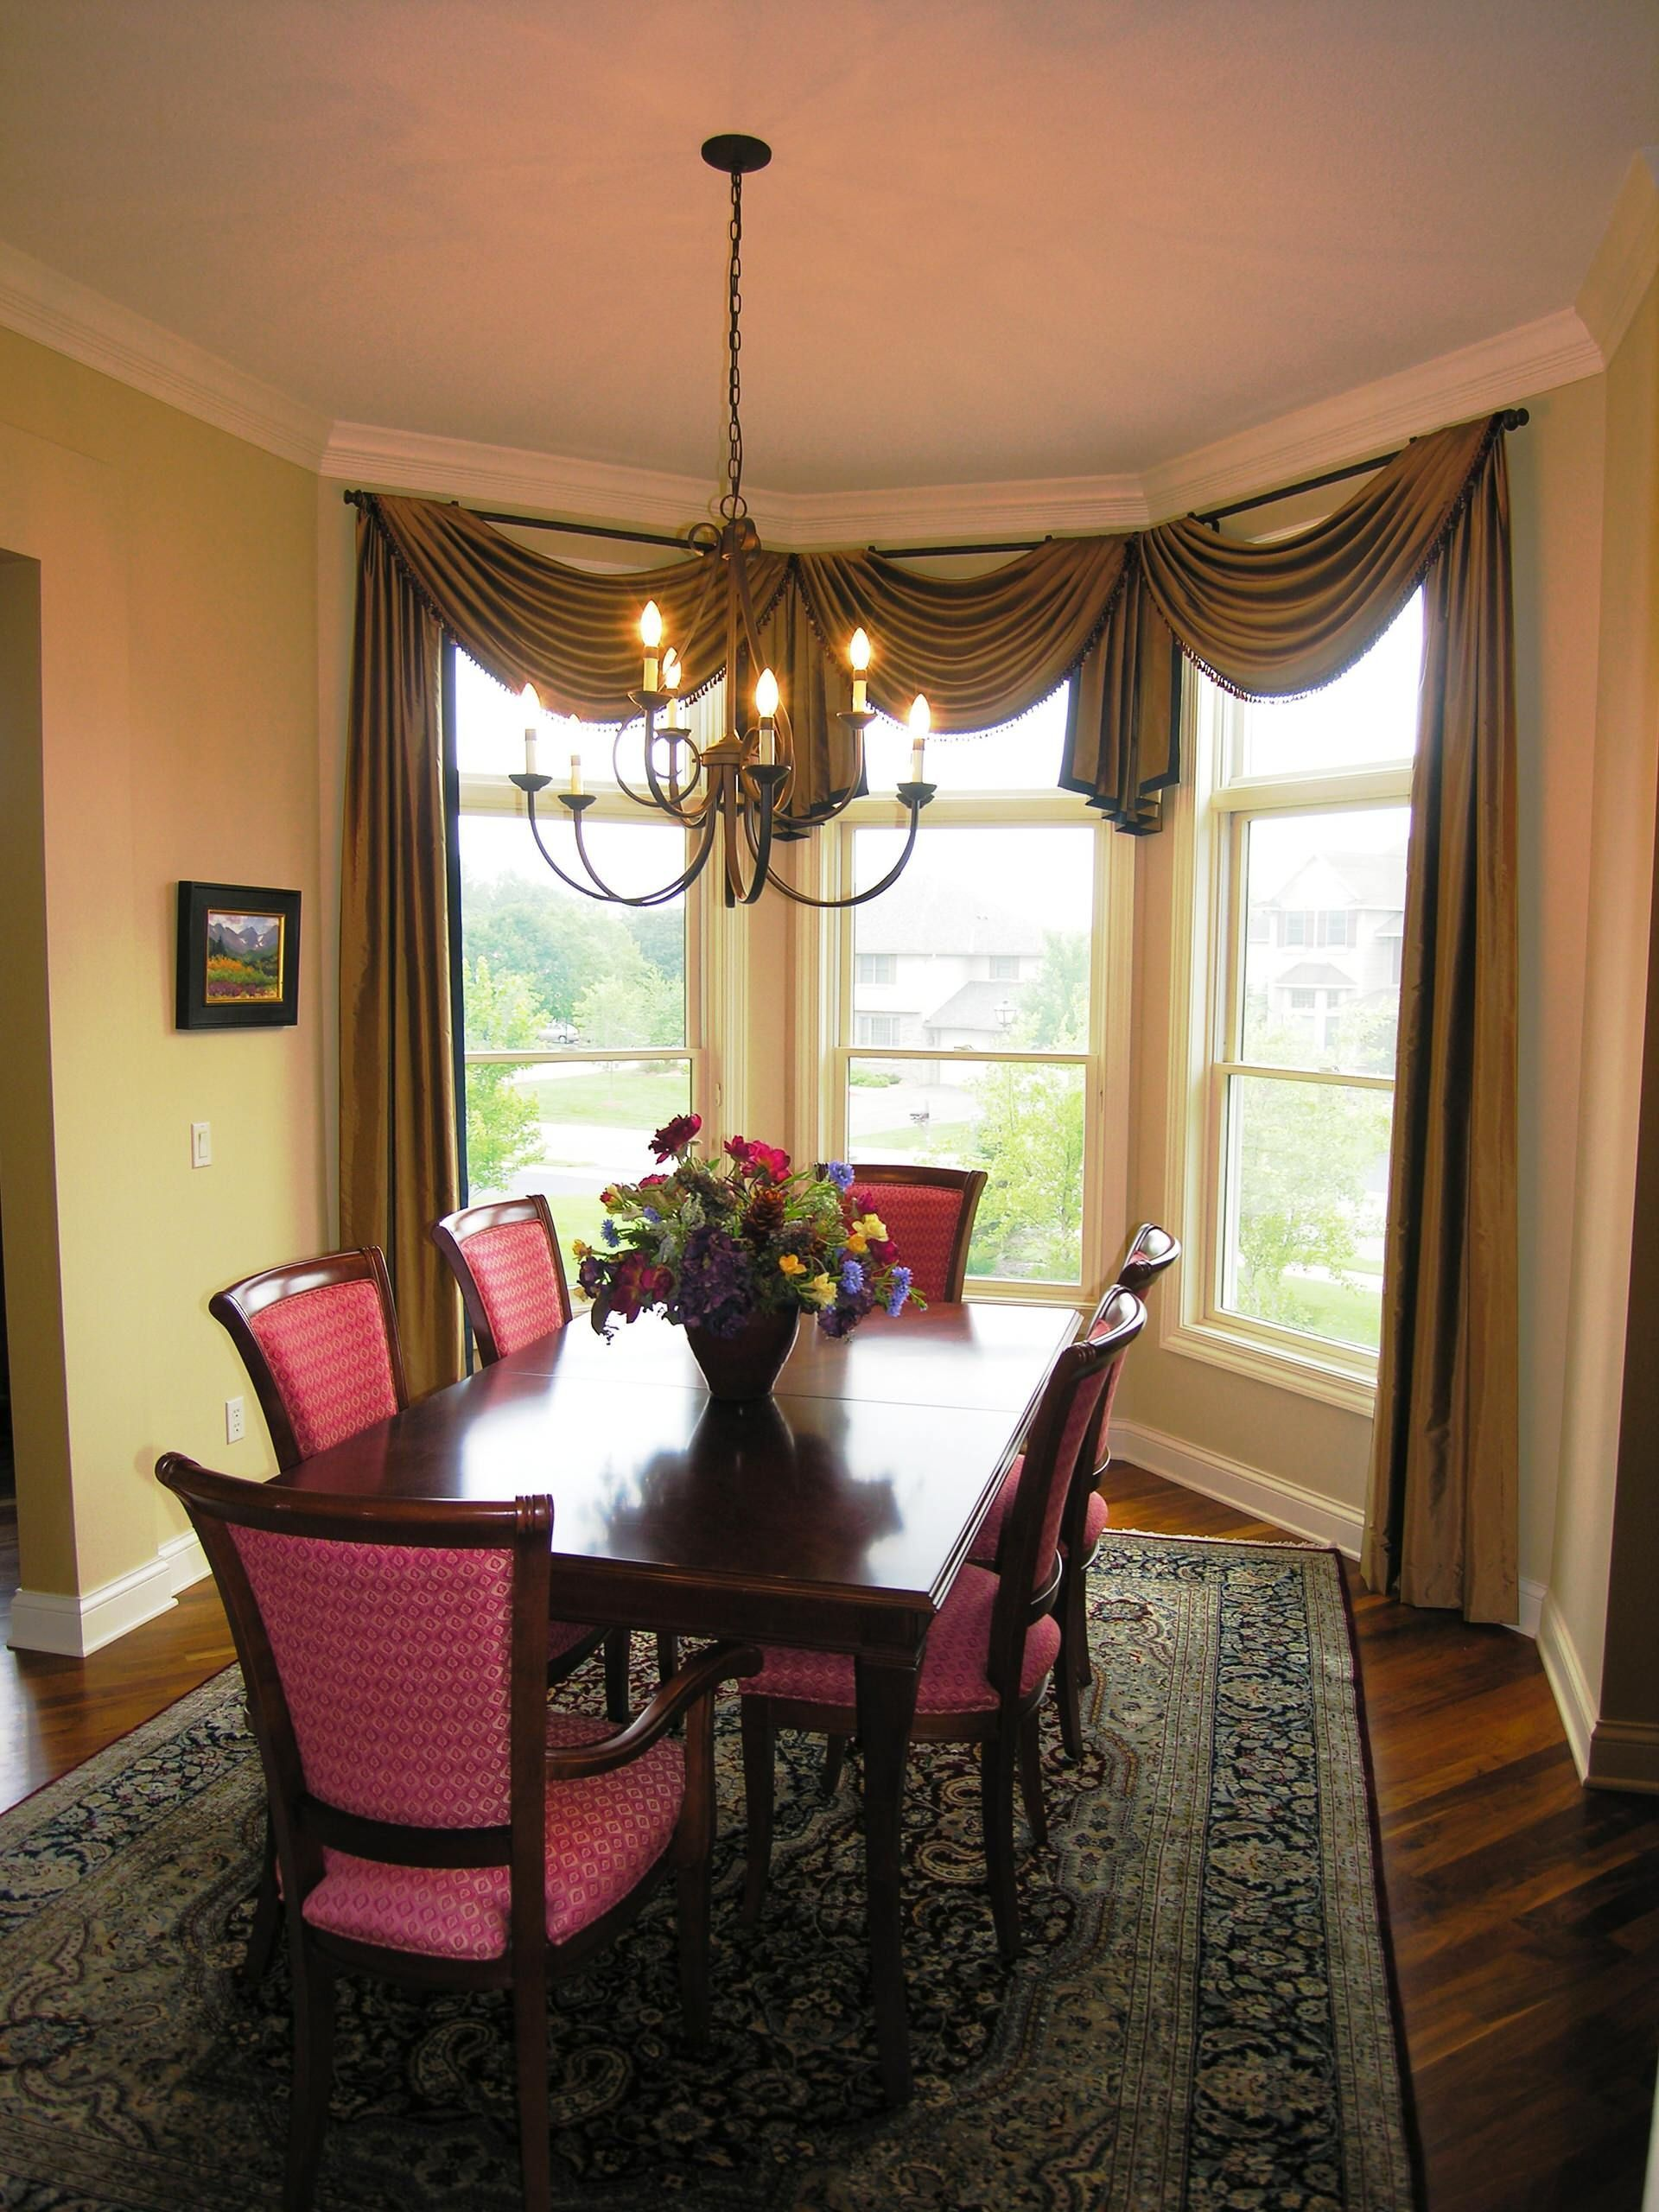 Formal Dining Room Window Treatments In 2021 Dining Room Window Treatments Dining Room Windows Dining Room Small